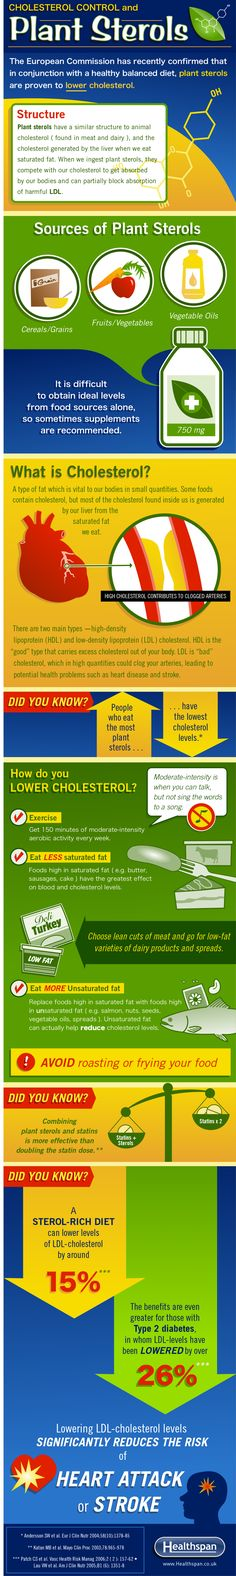 #Cholesterol Control and Plant #Sterols #Infographic